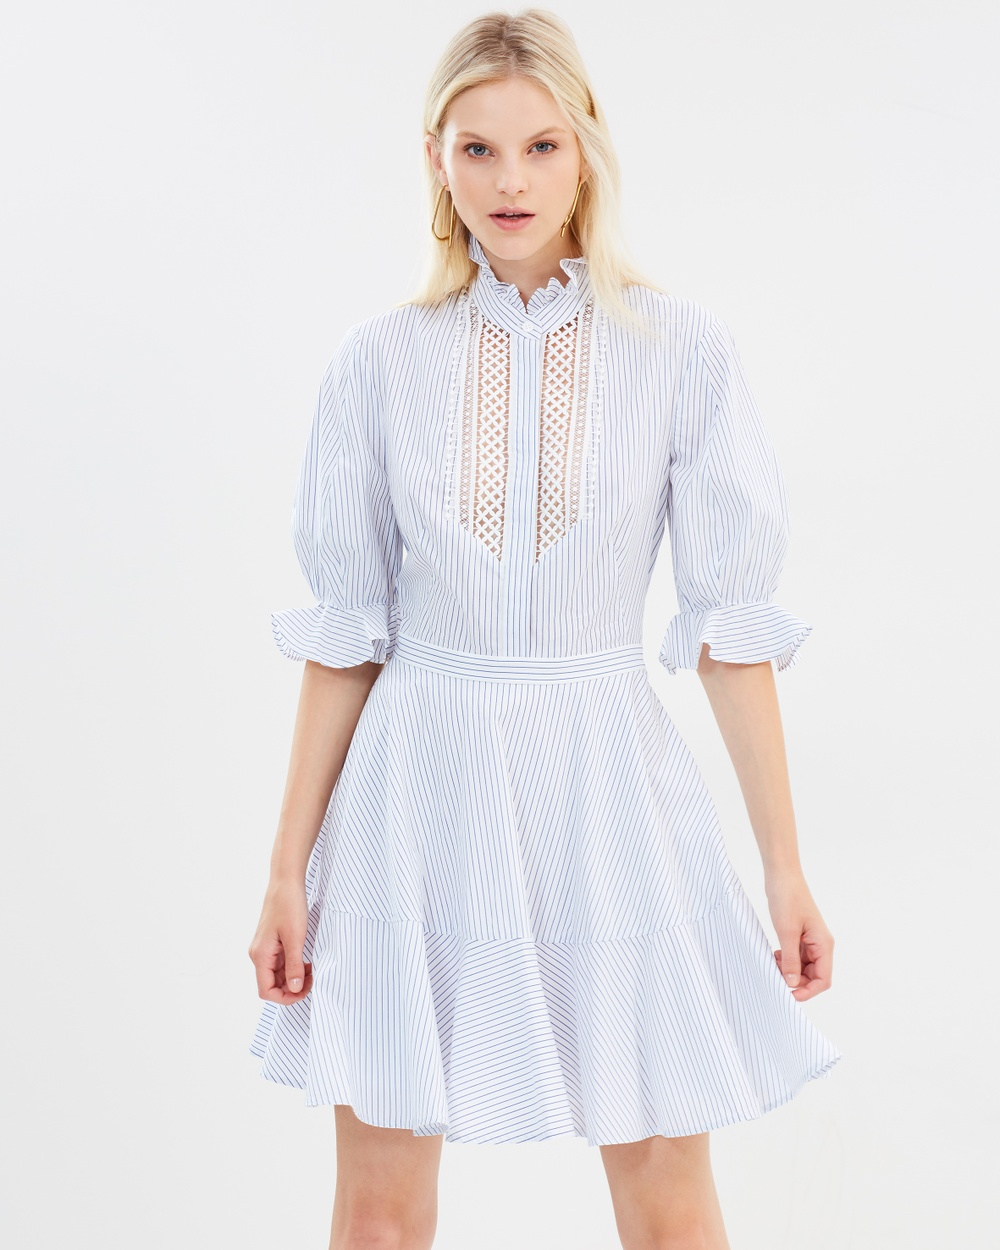 Lover Abbey Trim Dress Dresses White & Blue Abbey Trim Dress